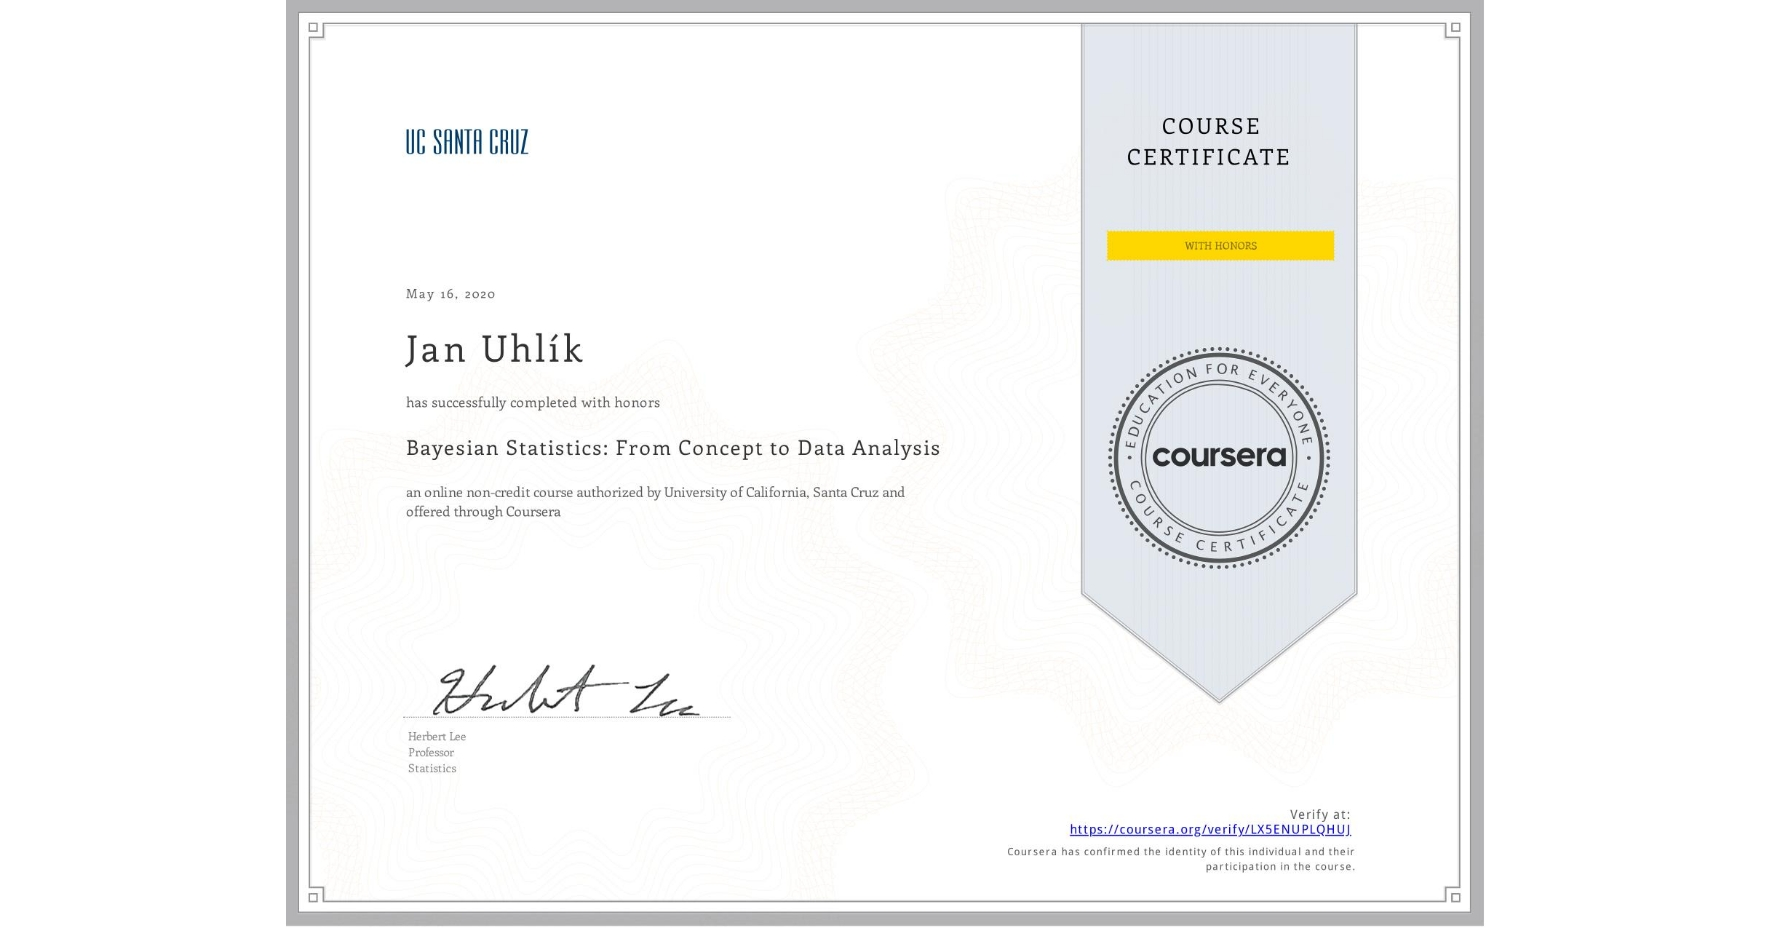 View certificate for Jan Uhlík, Bayesian Statistics: From Concept to Data Analysis, an online non-credit course authorized by University of California, Santa Cruz and offered through Coursera